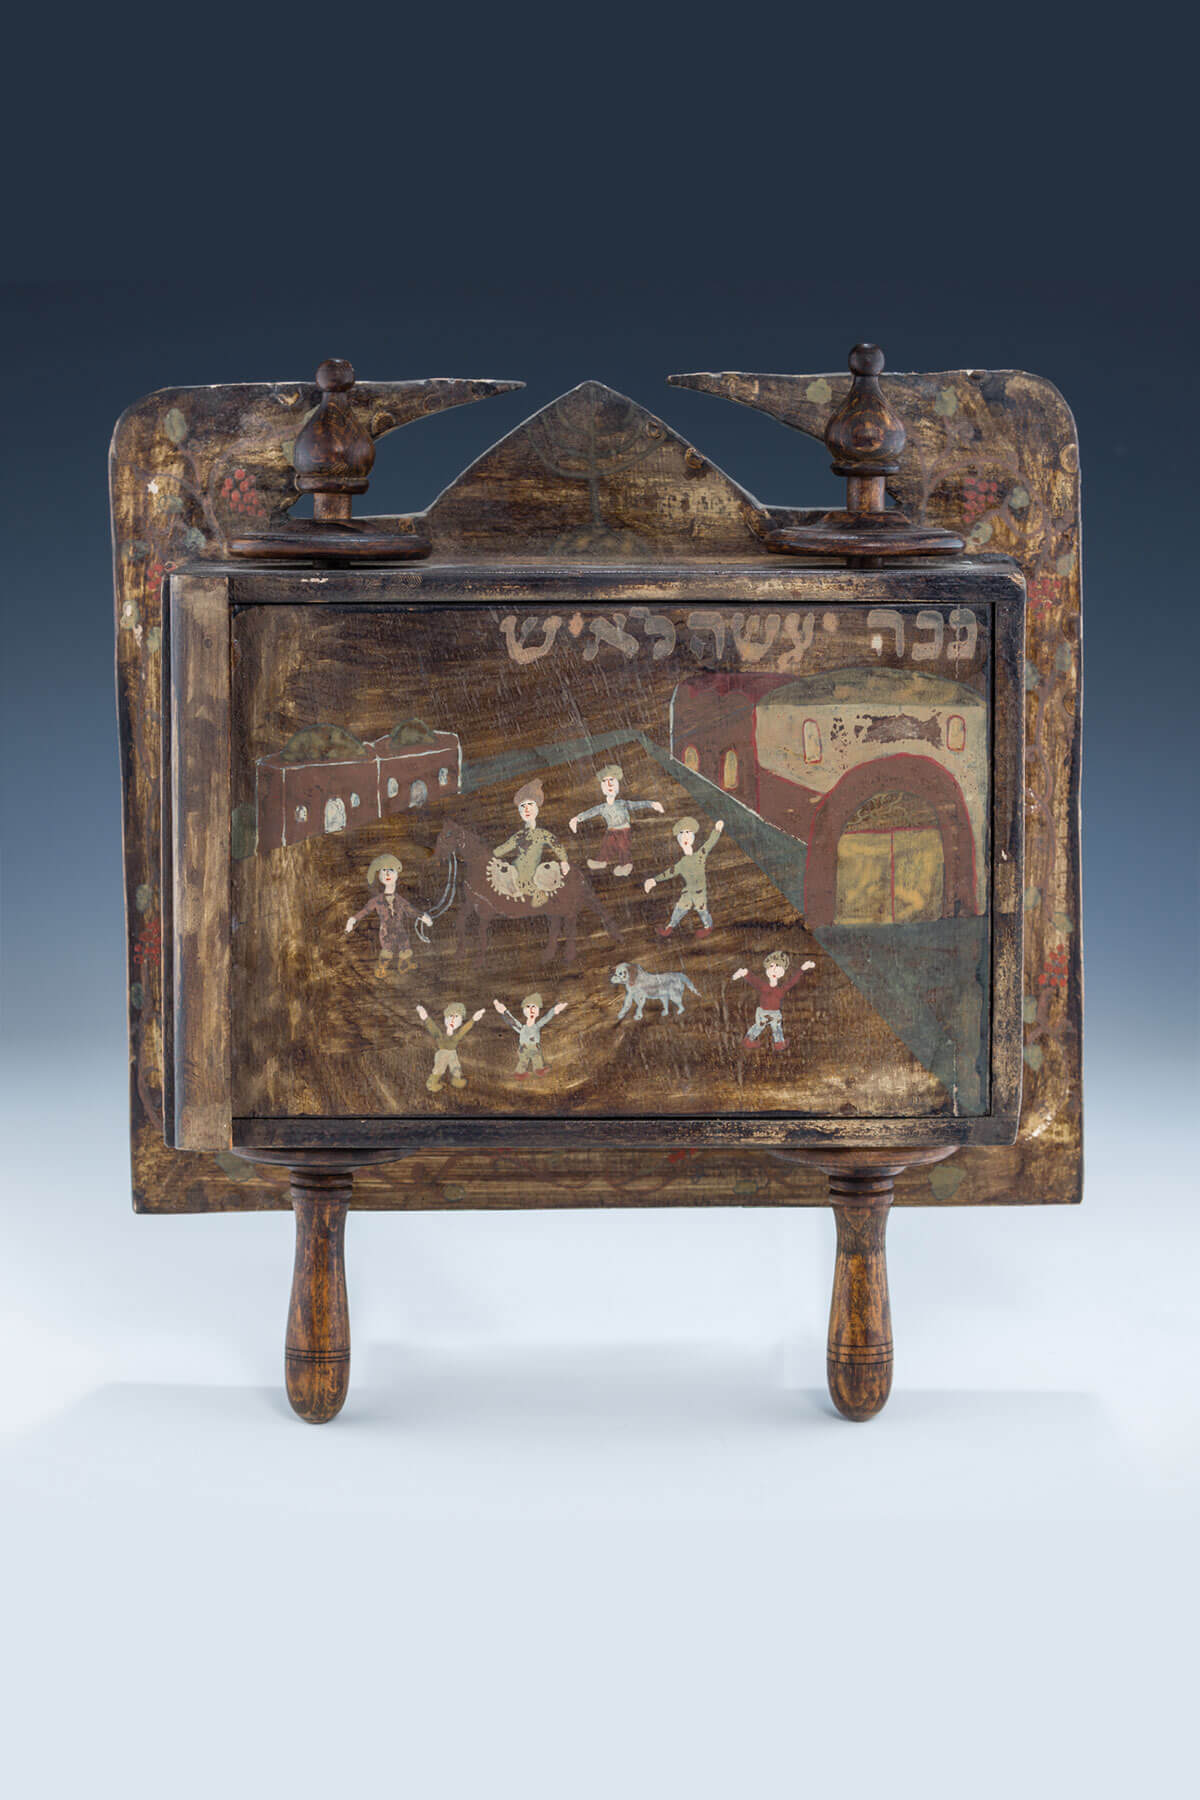 23. A Wooden Folk Art Megillah Case With Megillah